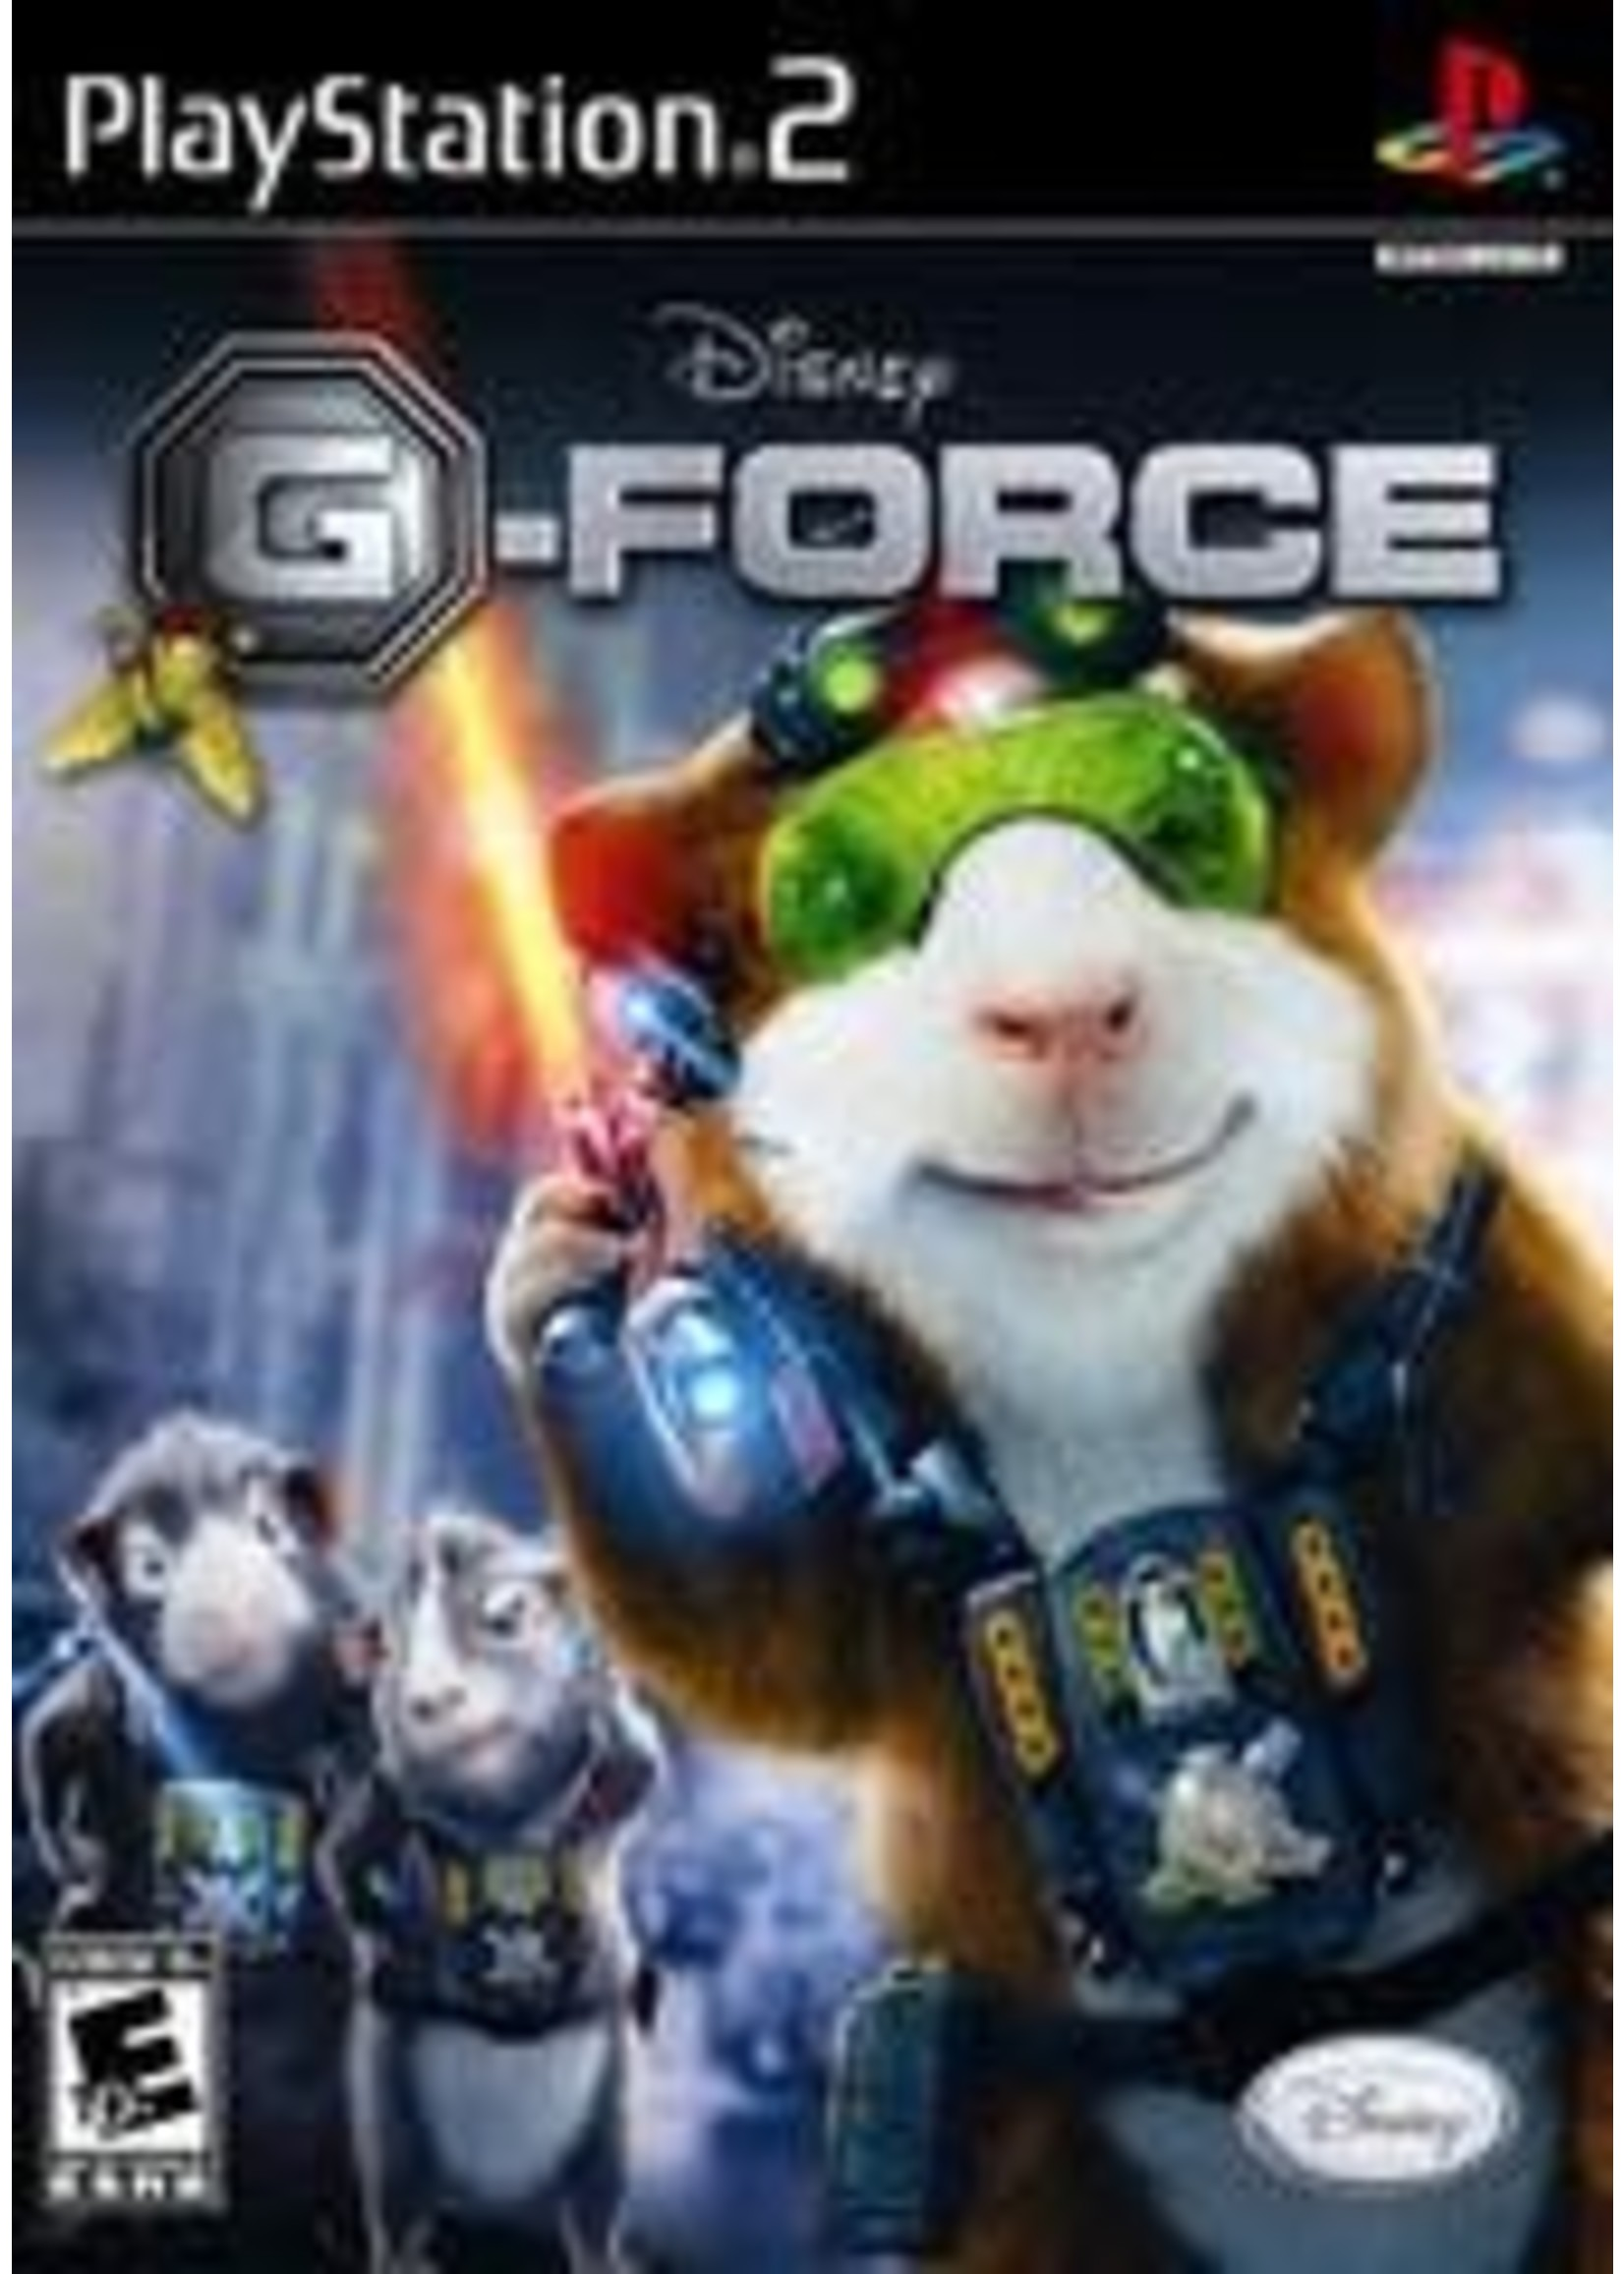 G-force - Playstation 2